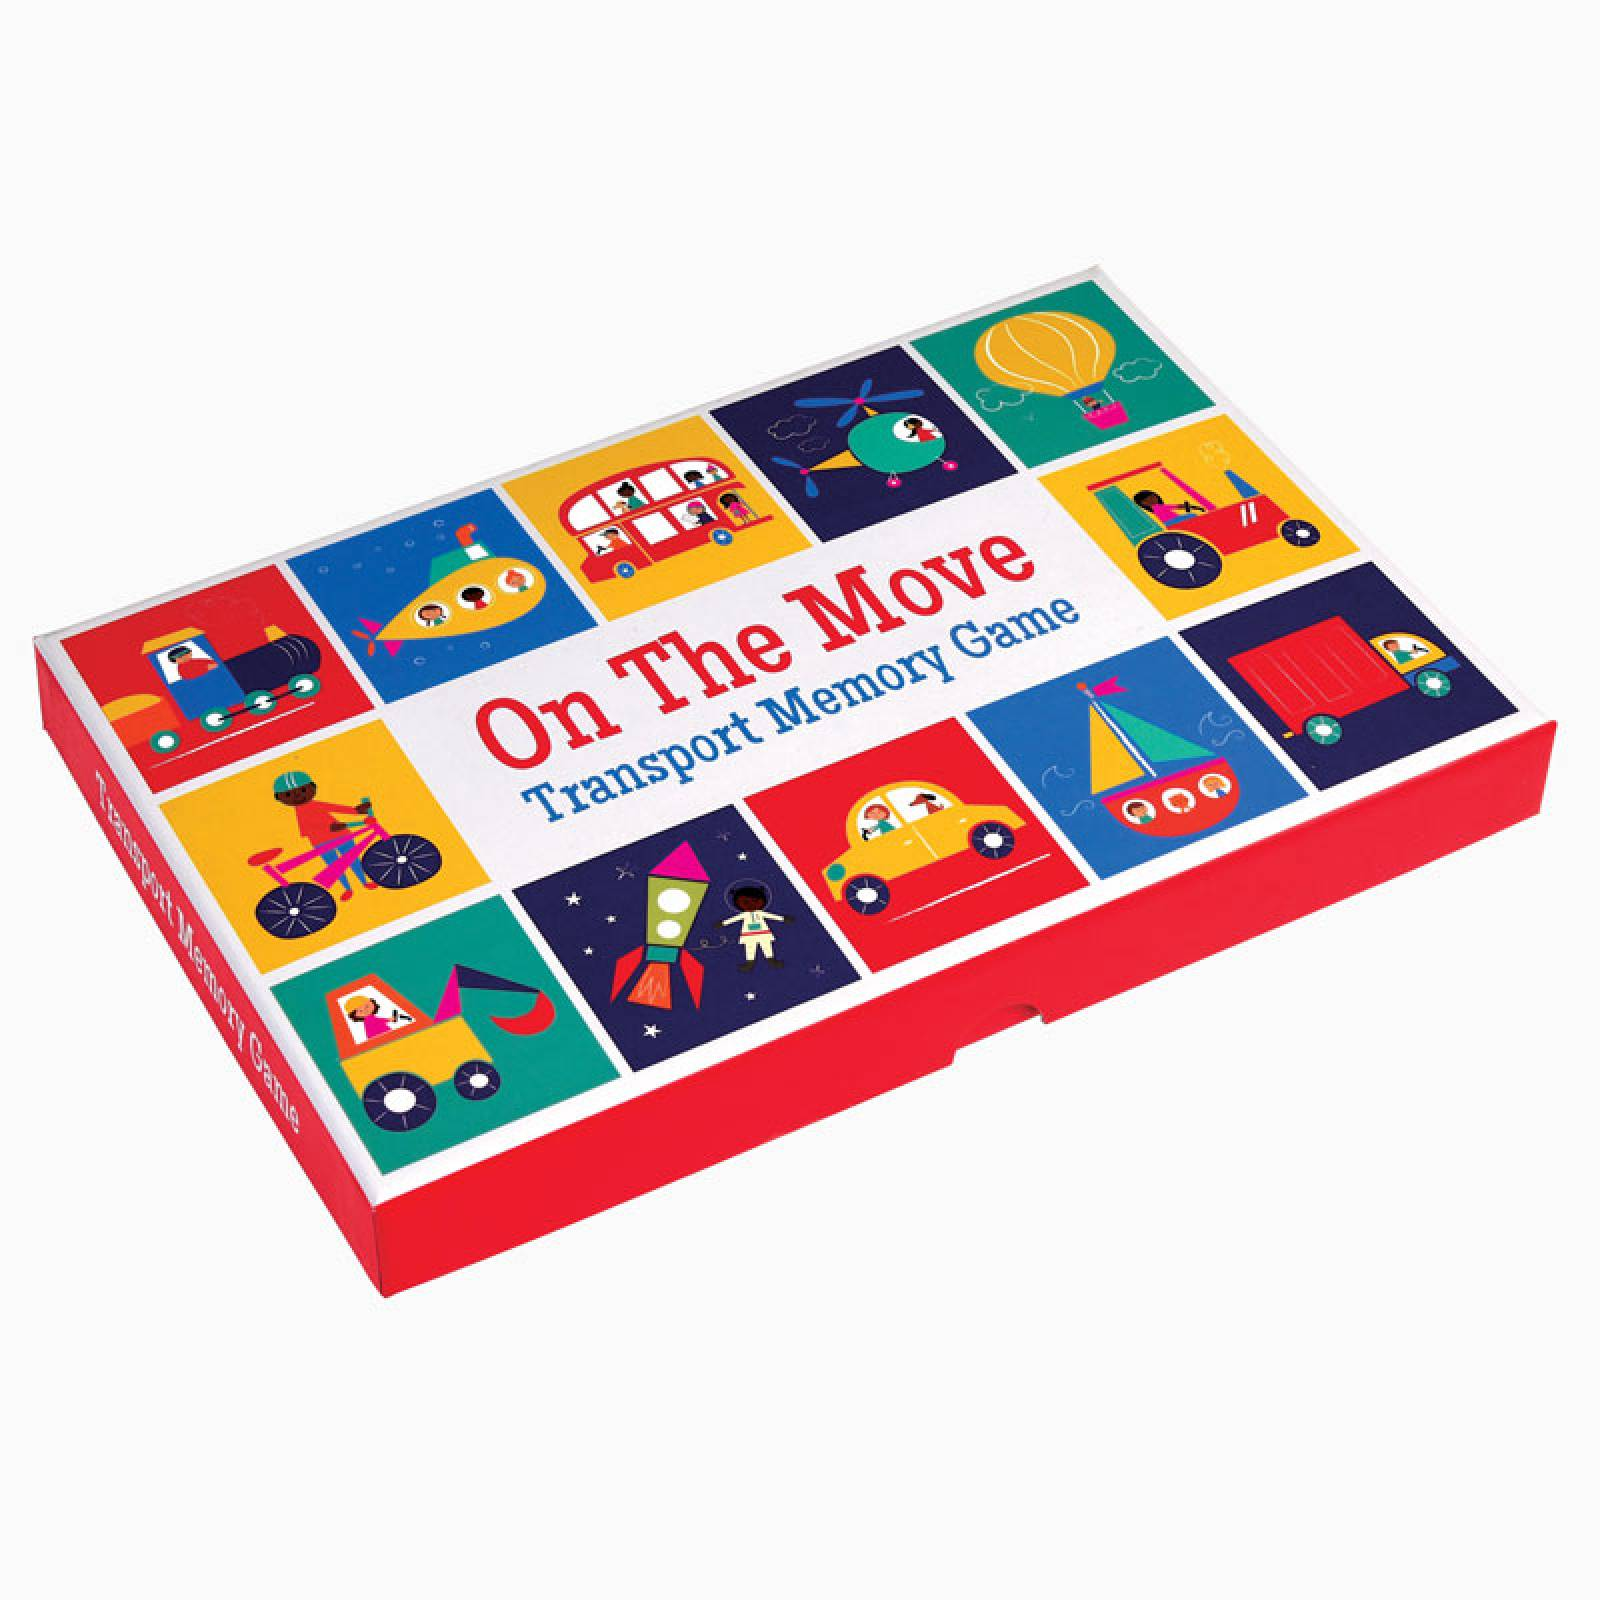 On The Move - Transport Memory Card Game thumbnails